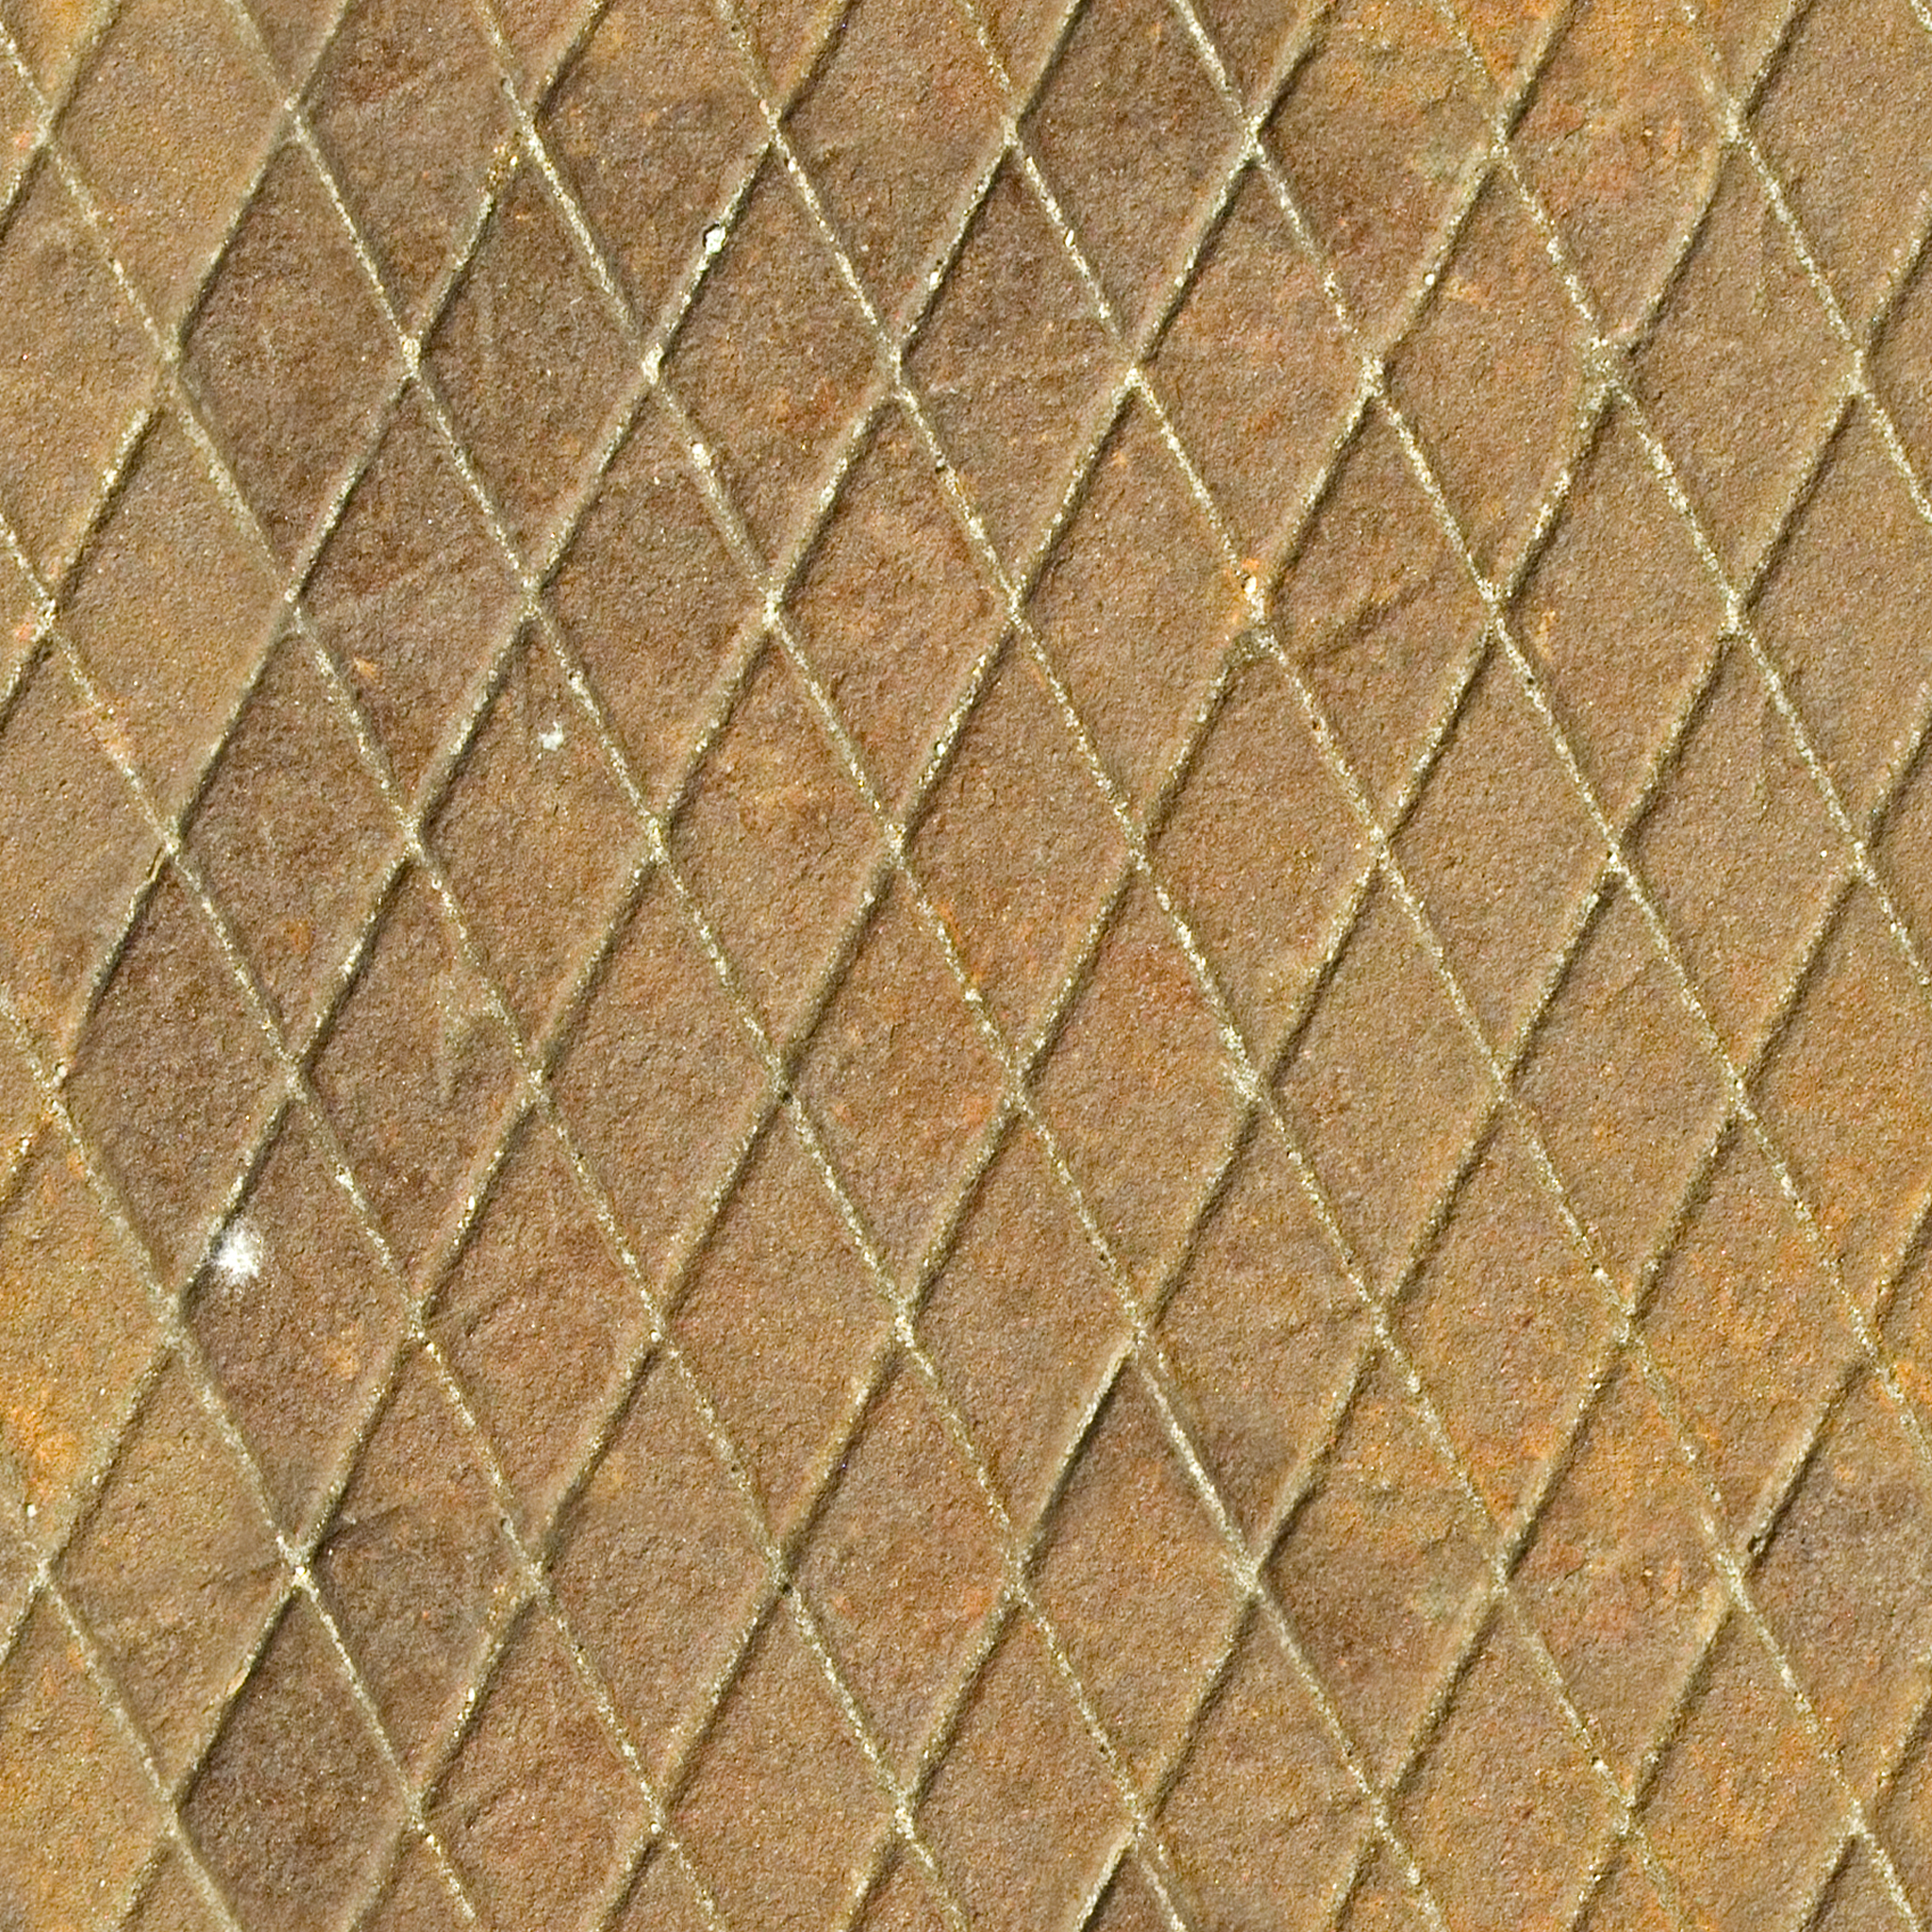 Inverted Diamond Grate.jpg